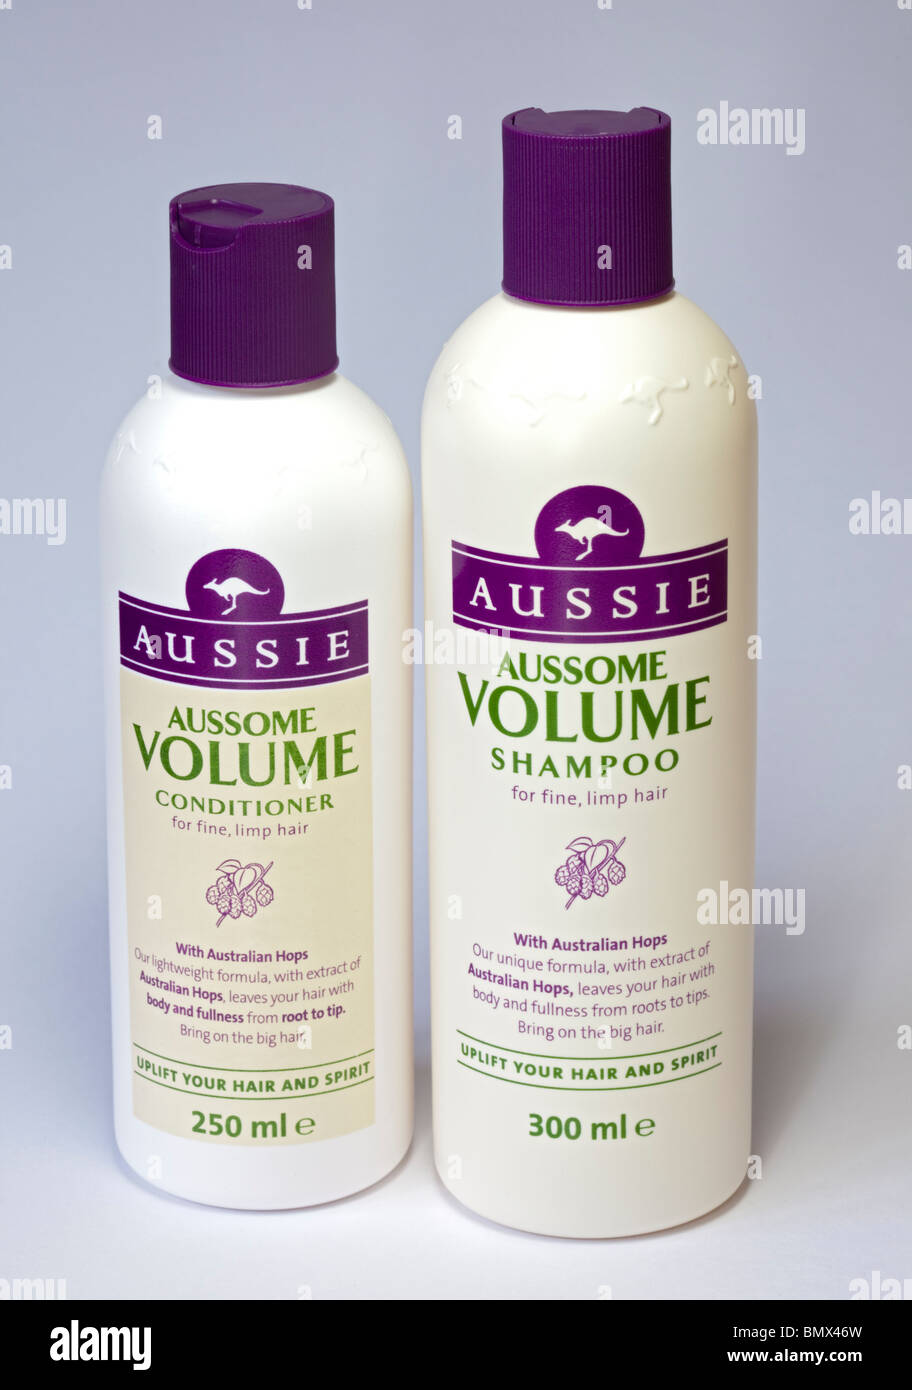 Aussie Aussome Volume Hair Shampoo and Conditioner - Stock Image